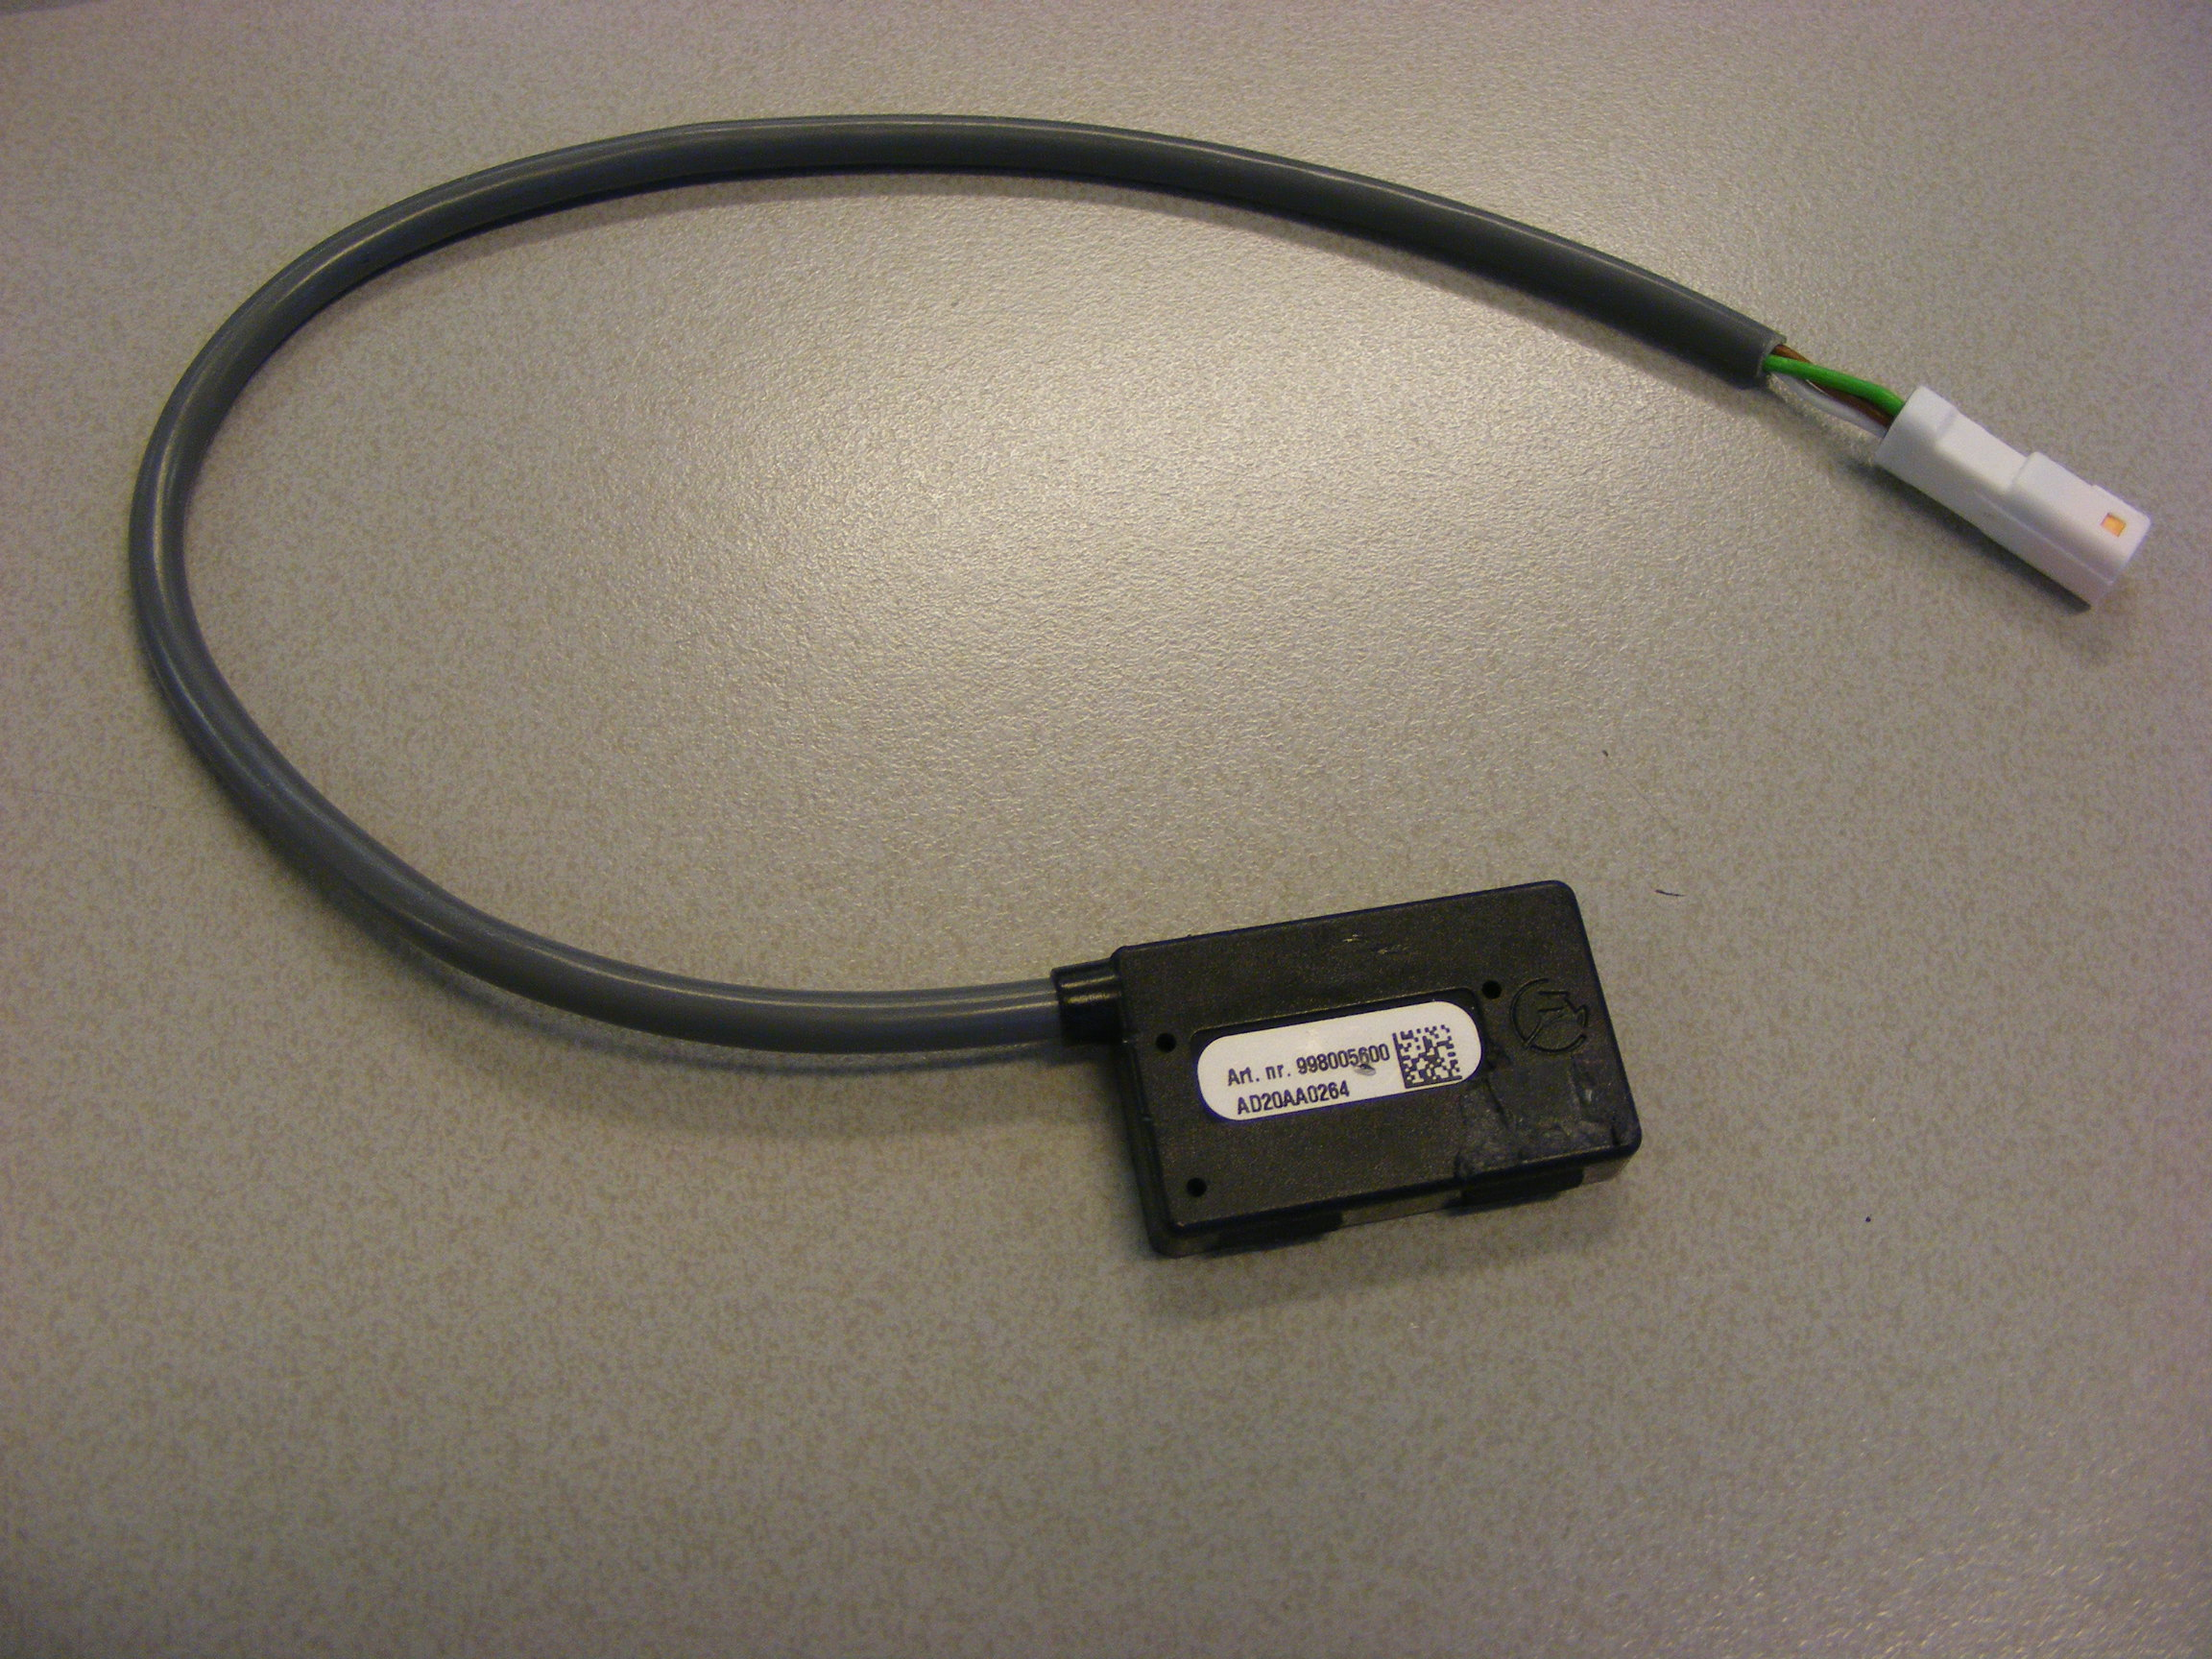 Gazelle Rotation Sensor for Innergy Standard